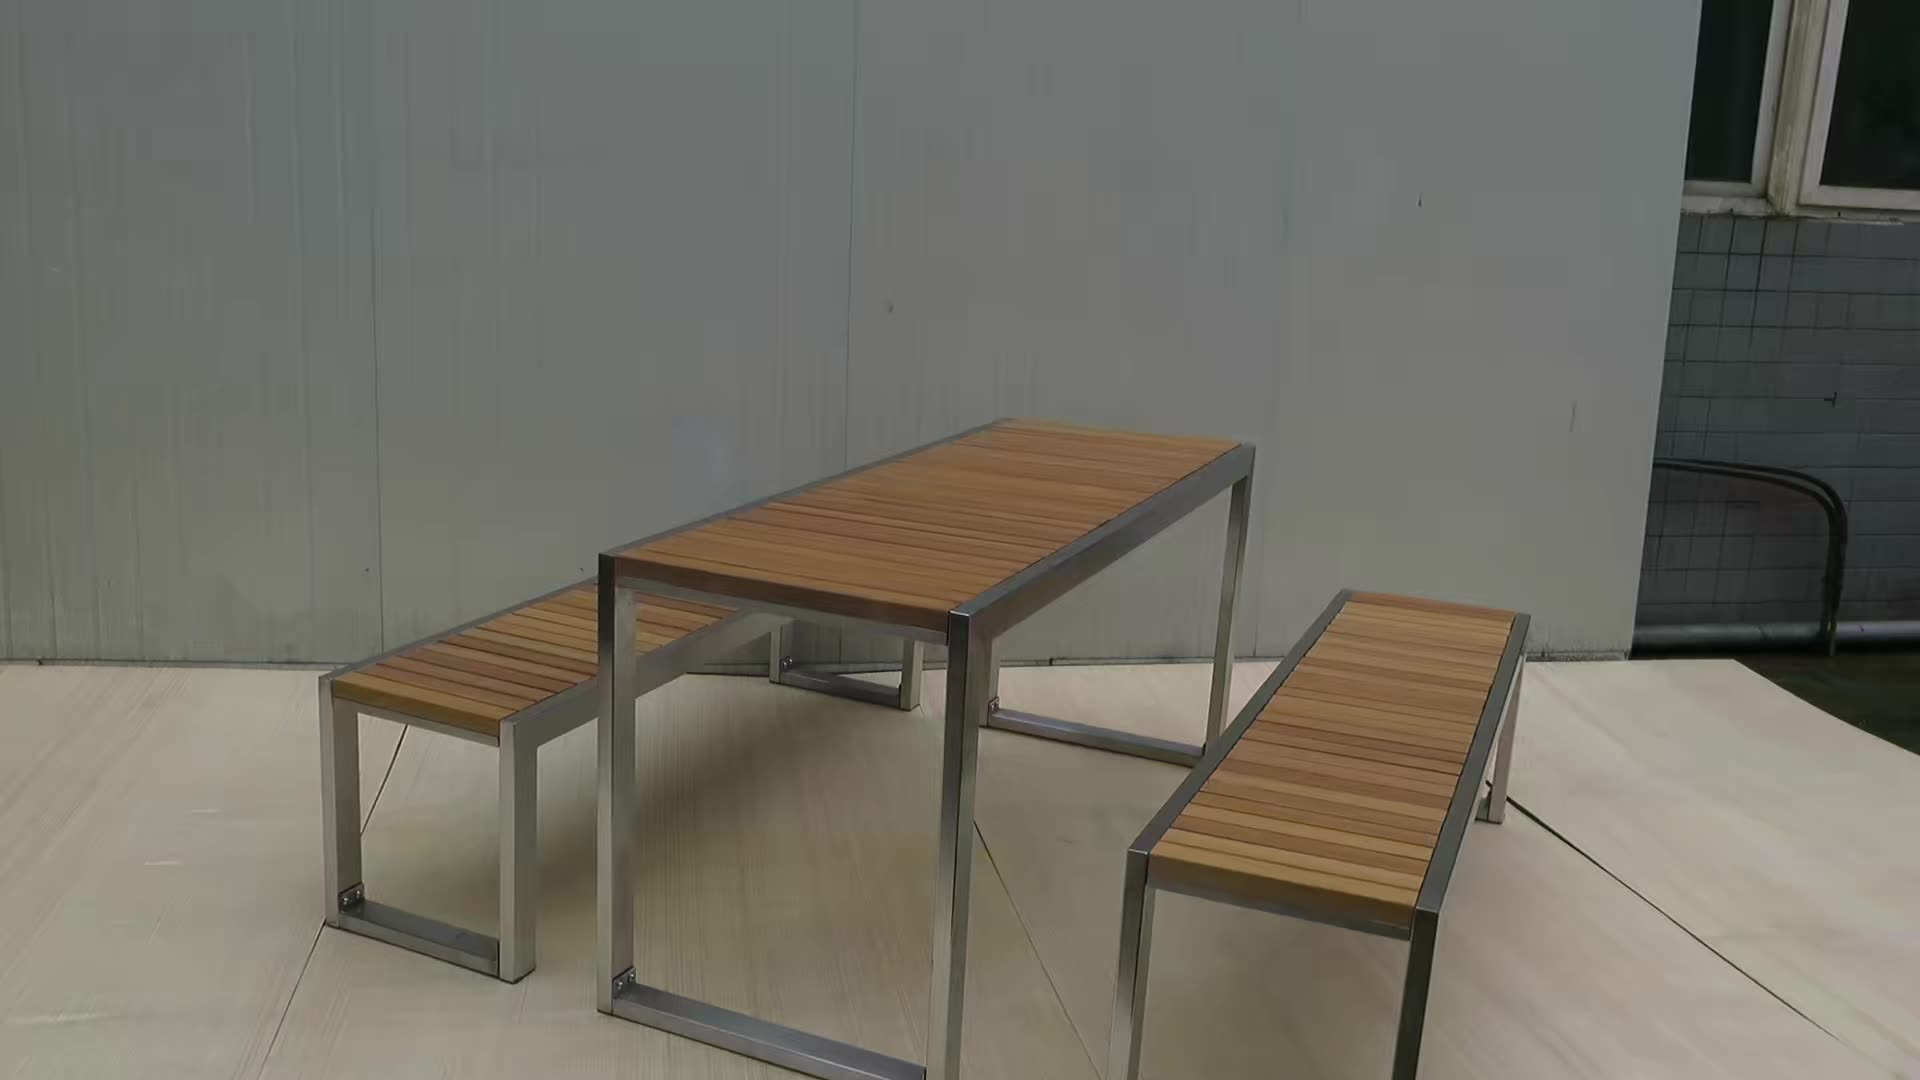 Outdoor dining Table Set with bench chair seat rectangle wood picnic table bench